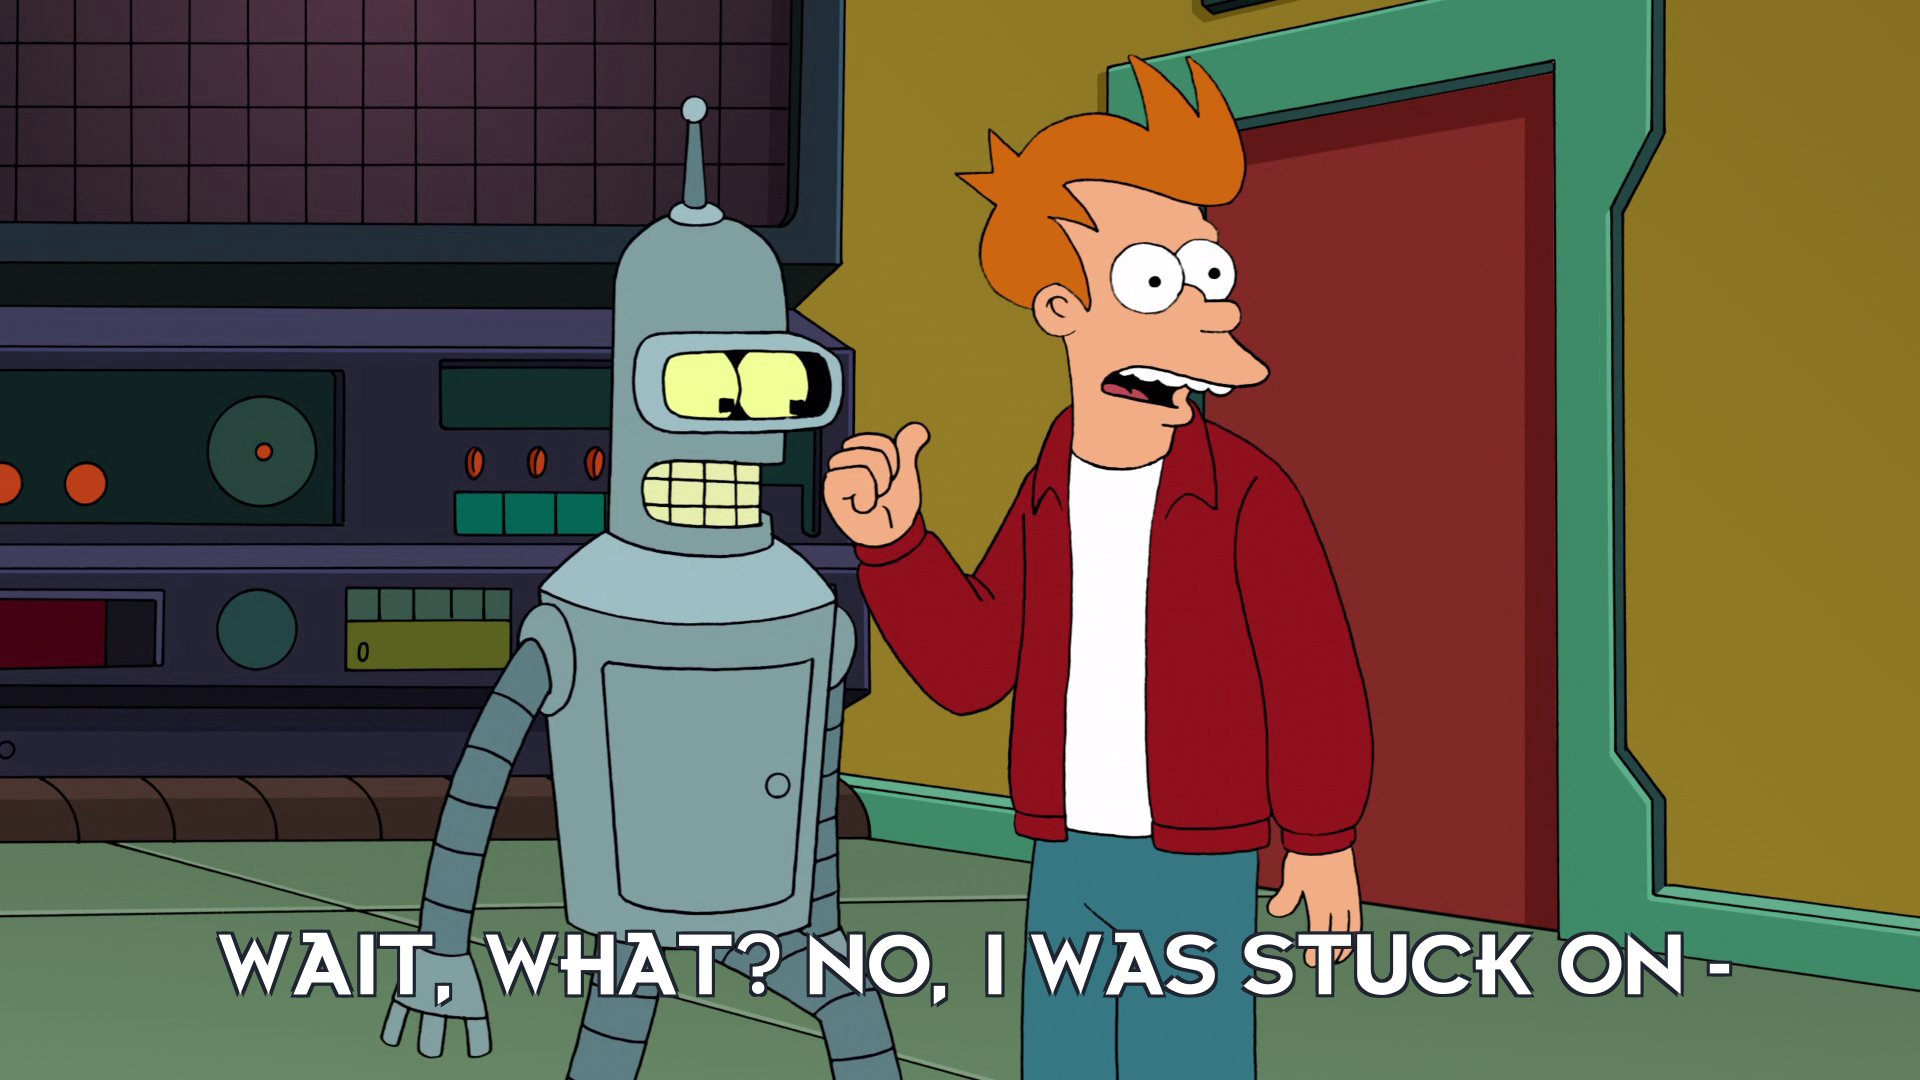 Philip J Fry: Wait, what? No, I was stuck on –